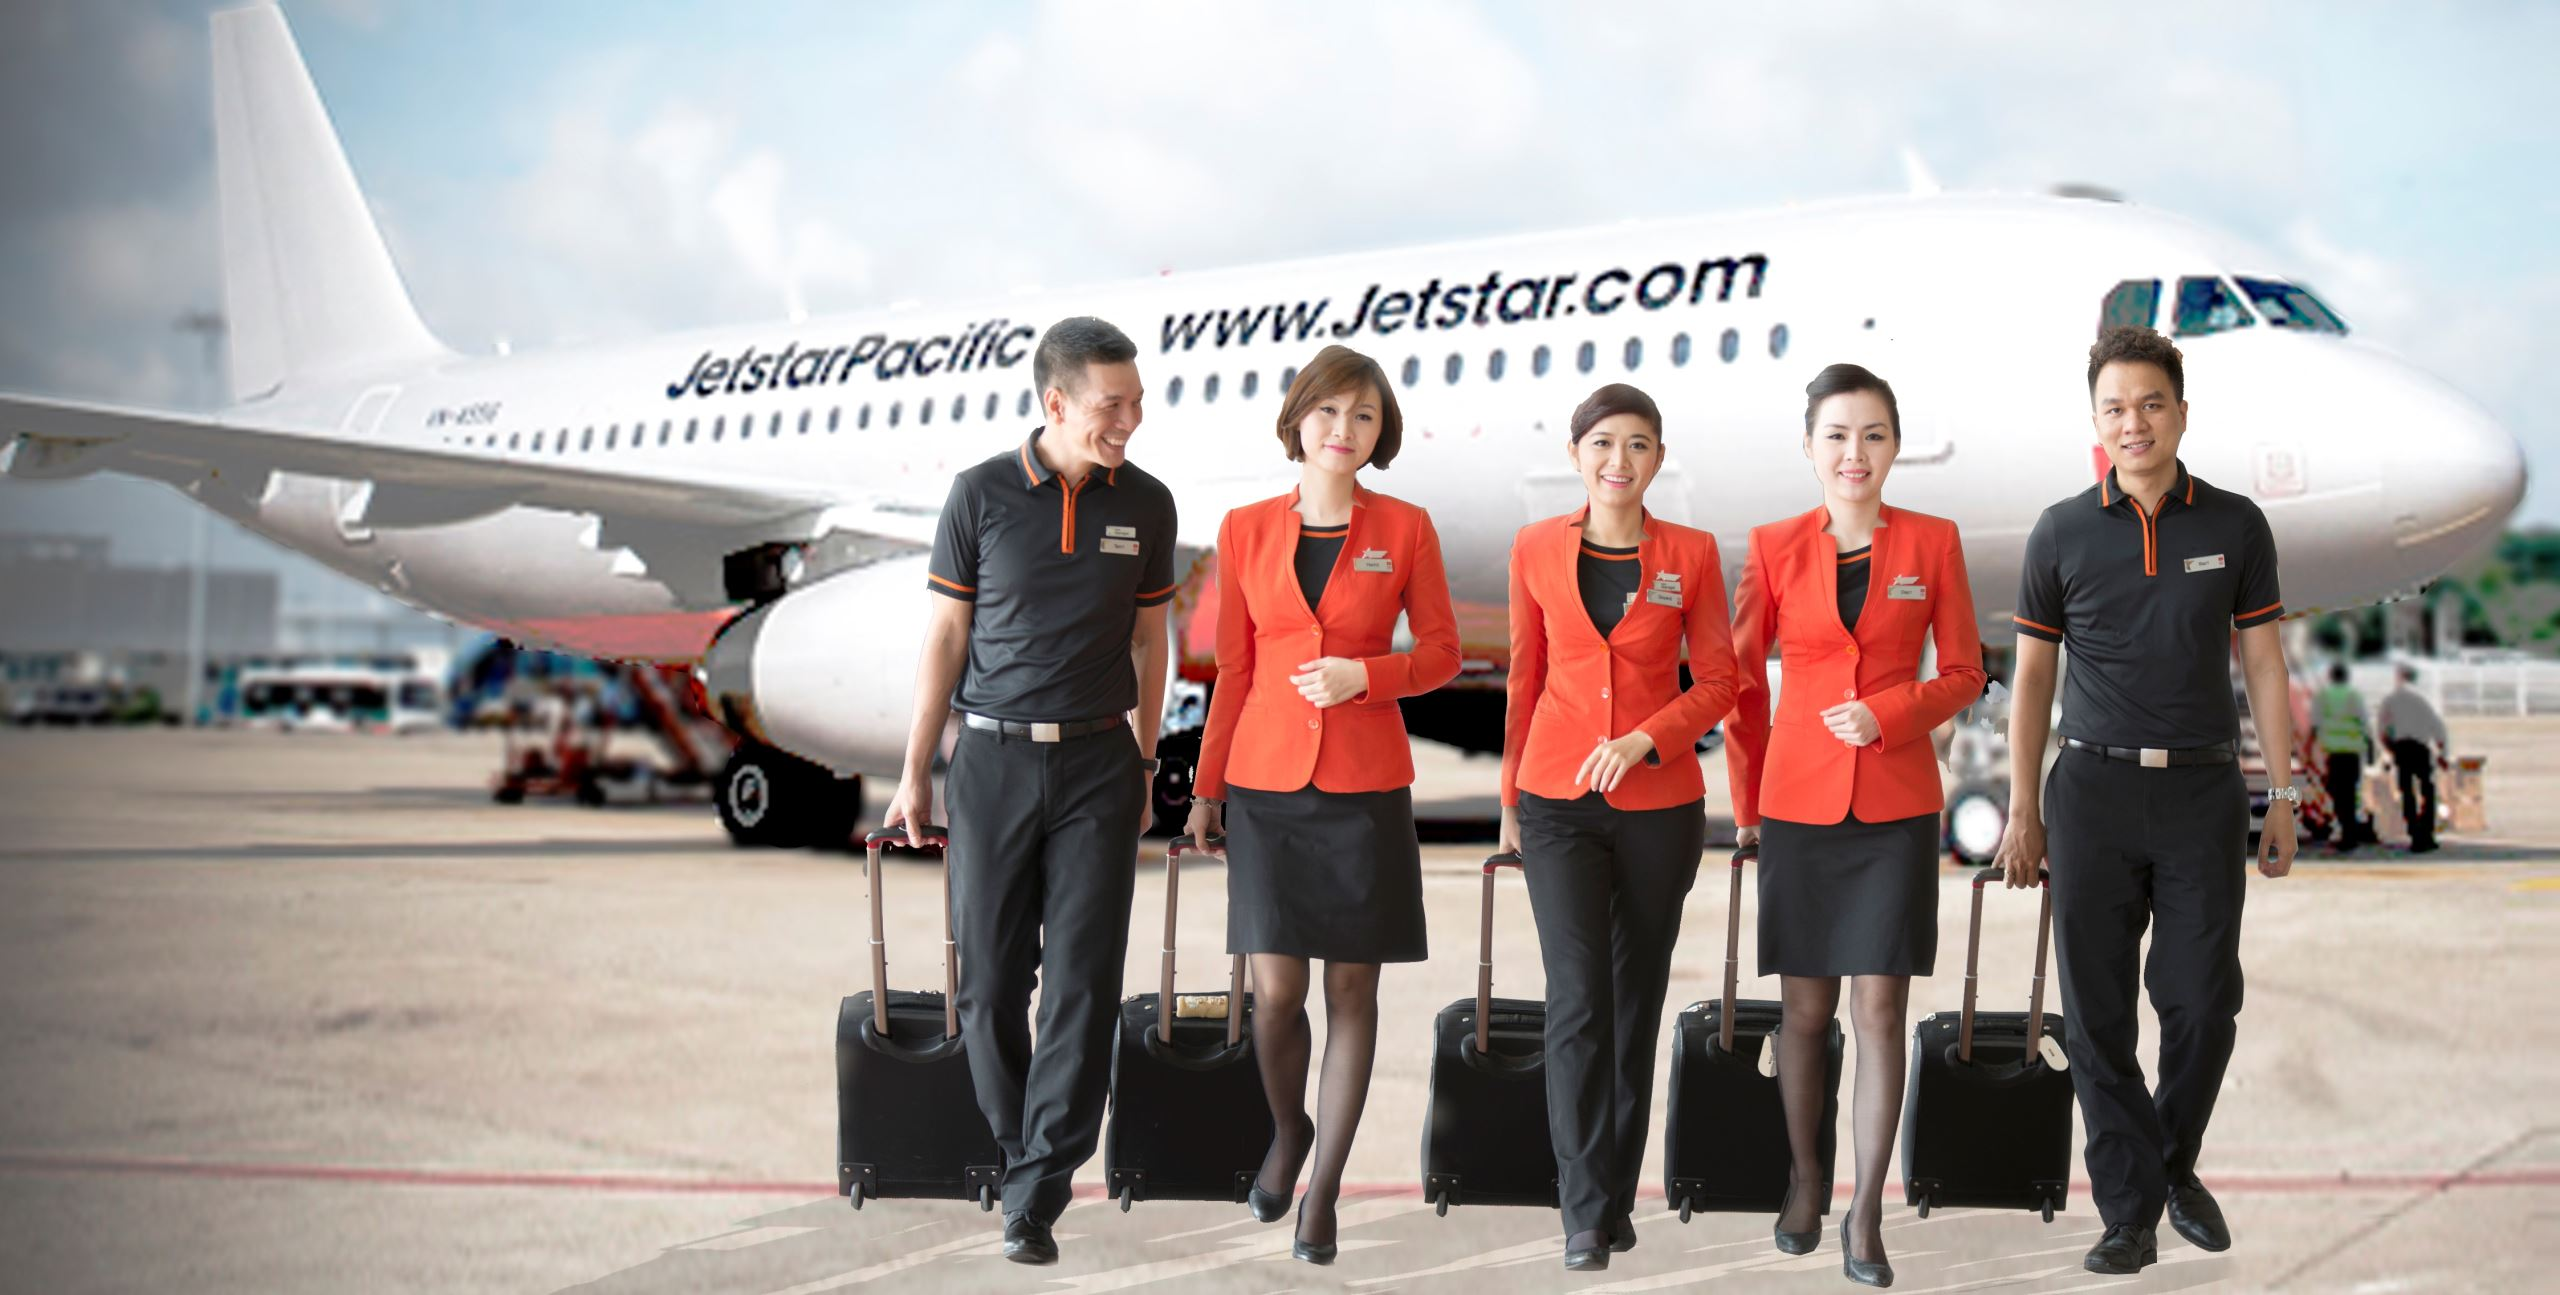 jetstar-pacific-ve-may-bay-di-thanh-hoa